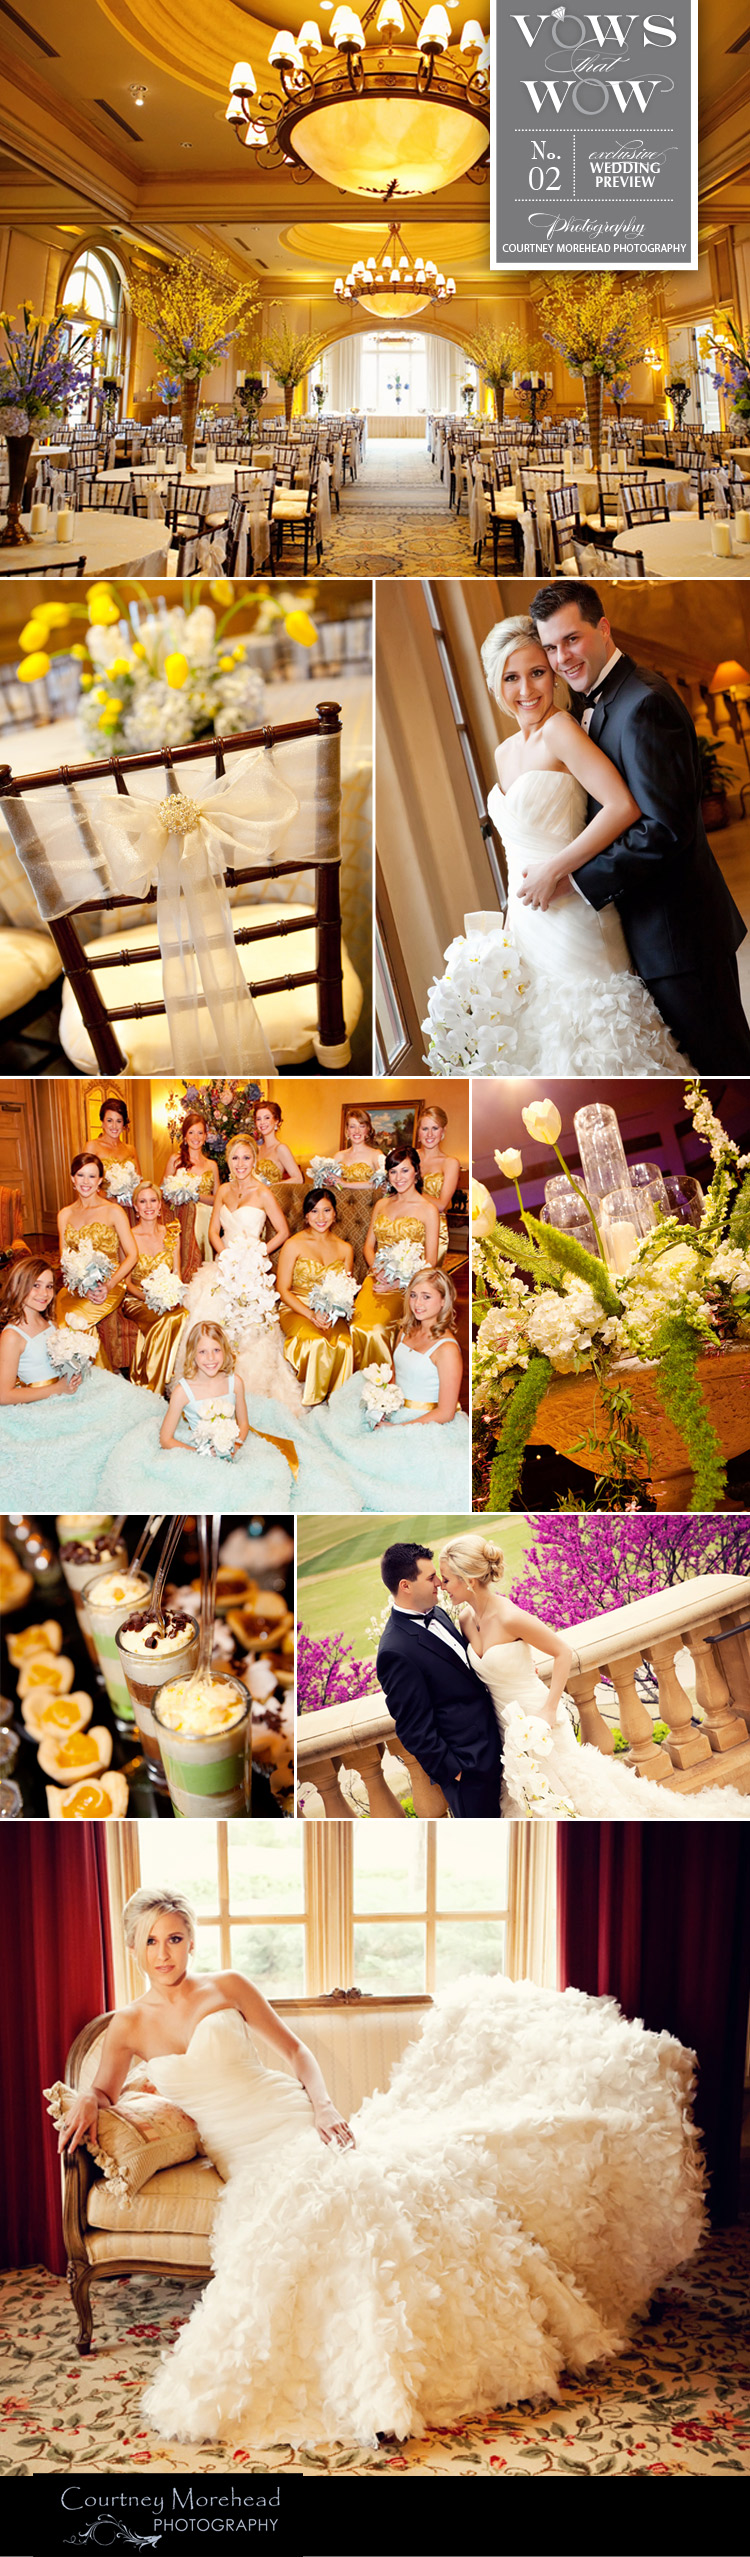 Brides of Oklahoma Vows that Wow - Courtney Morehead Photography